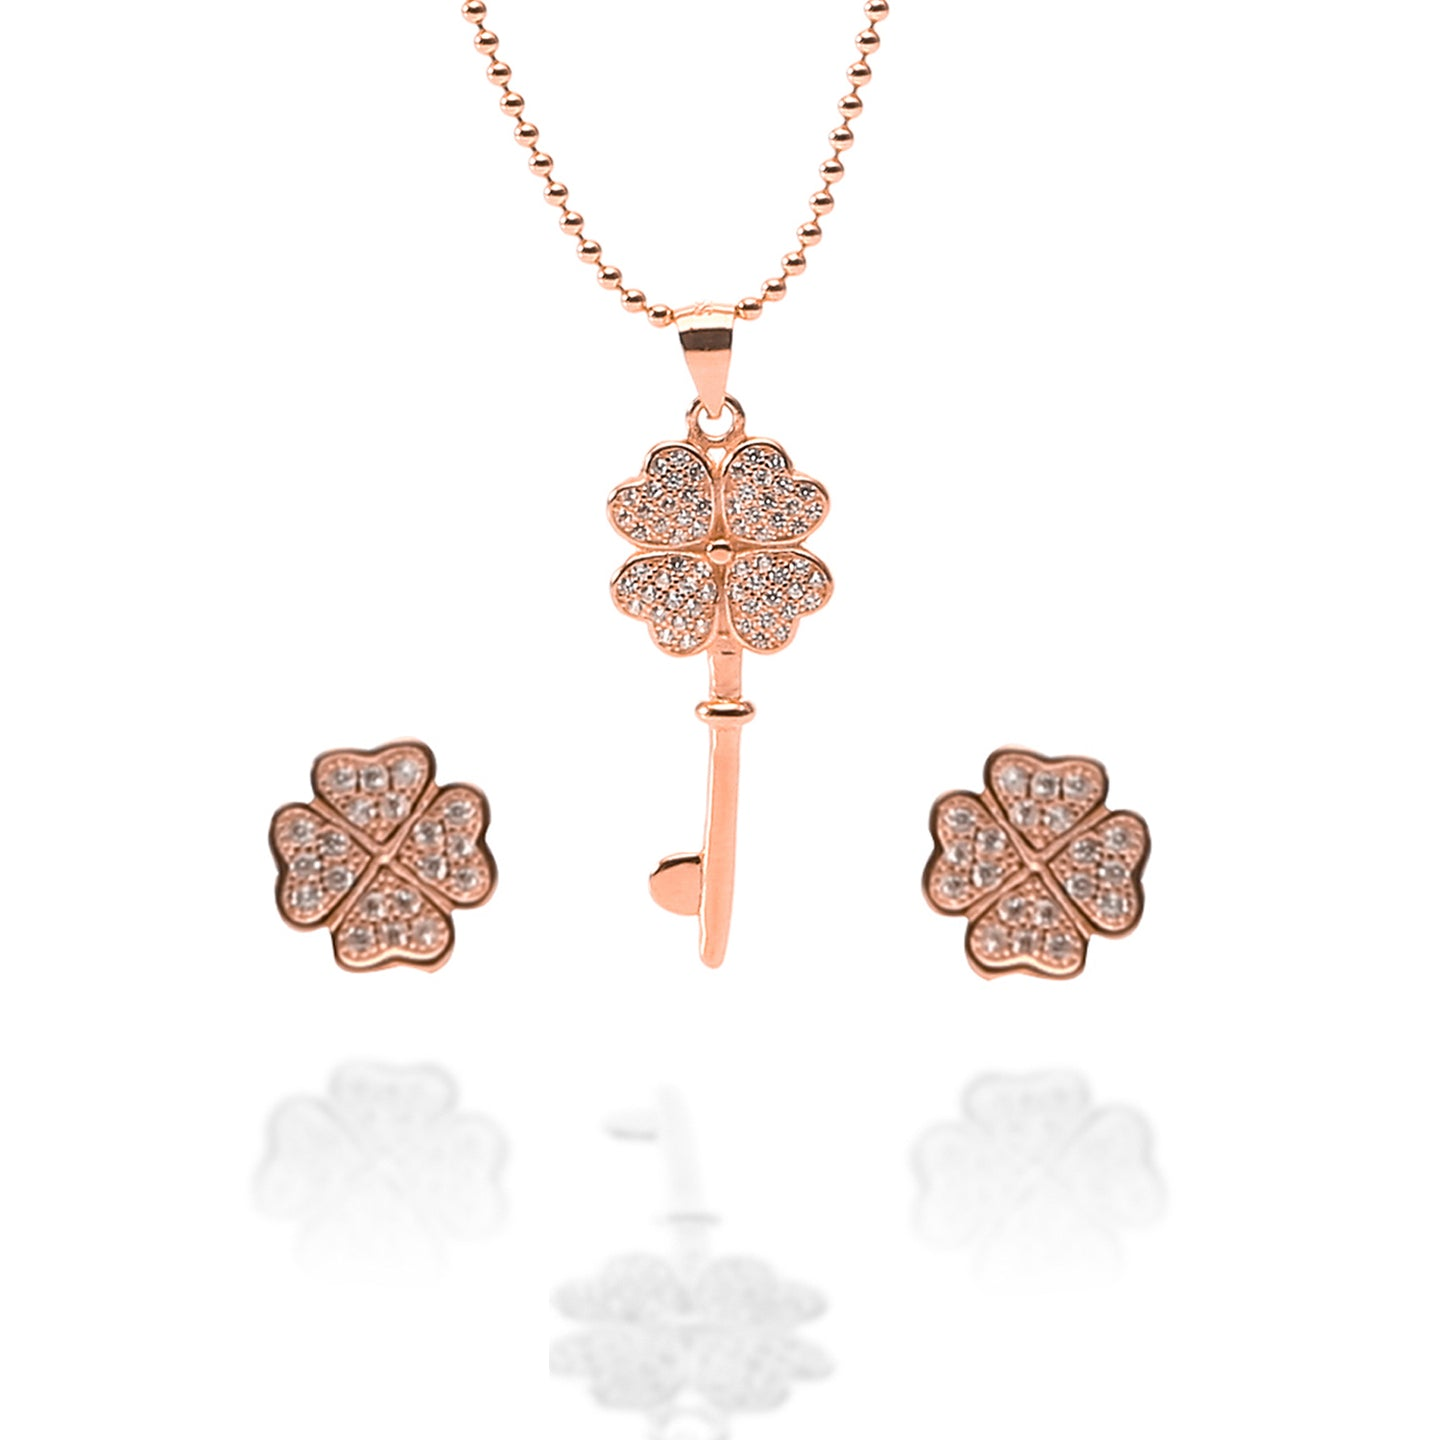 Key to My Heart Pendant Necklace and Earrings Set - ARJW1012RG - ARCADIO LIFESTYLE